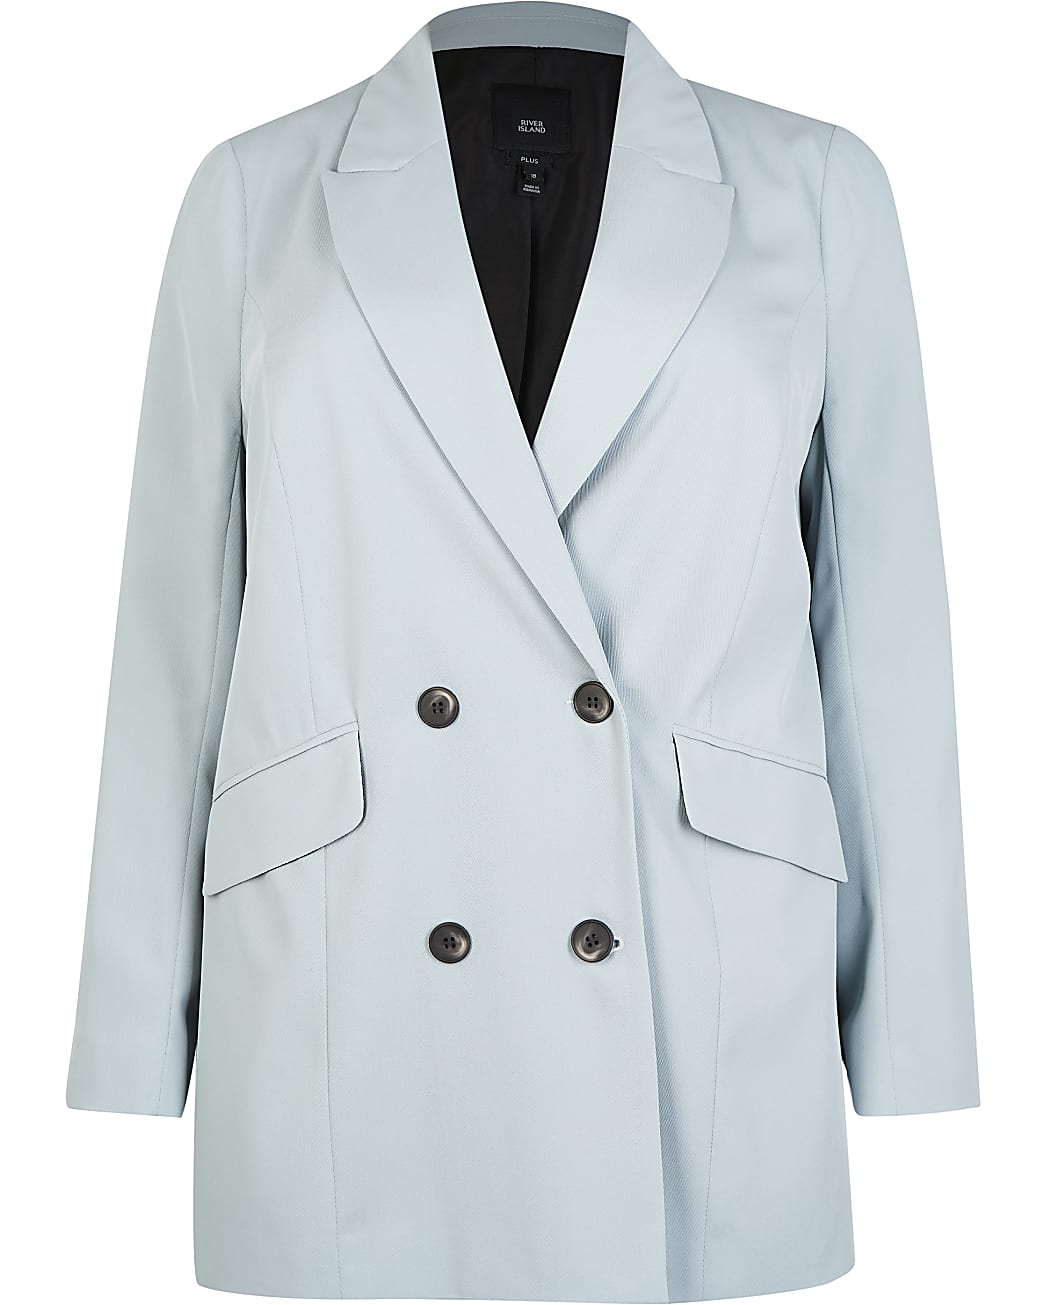 Plus blue double breasted blazer